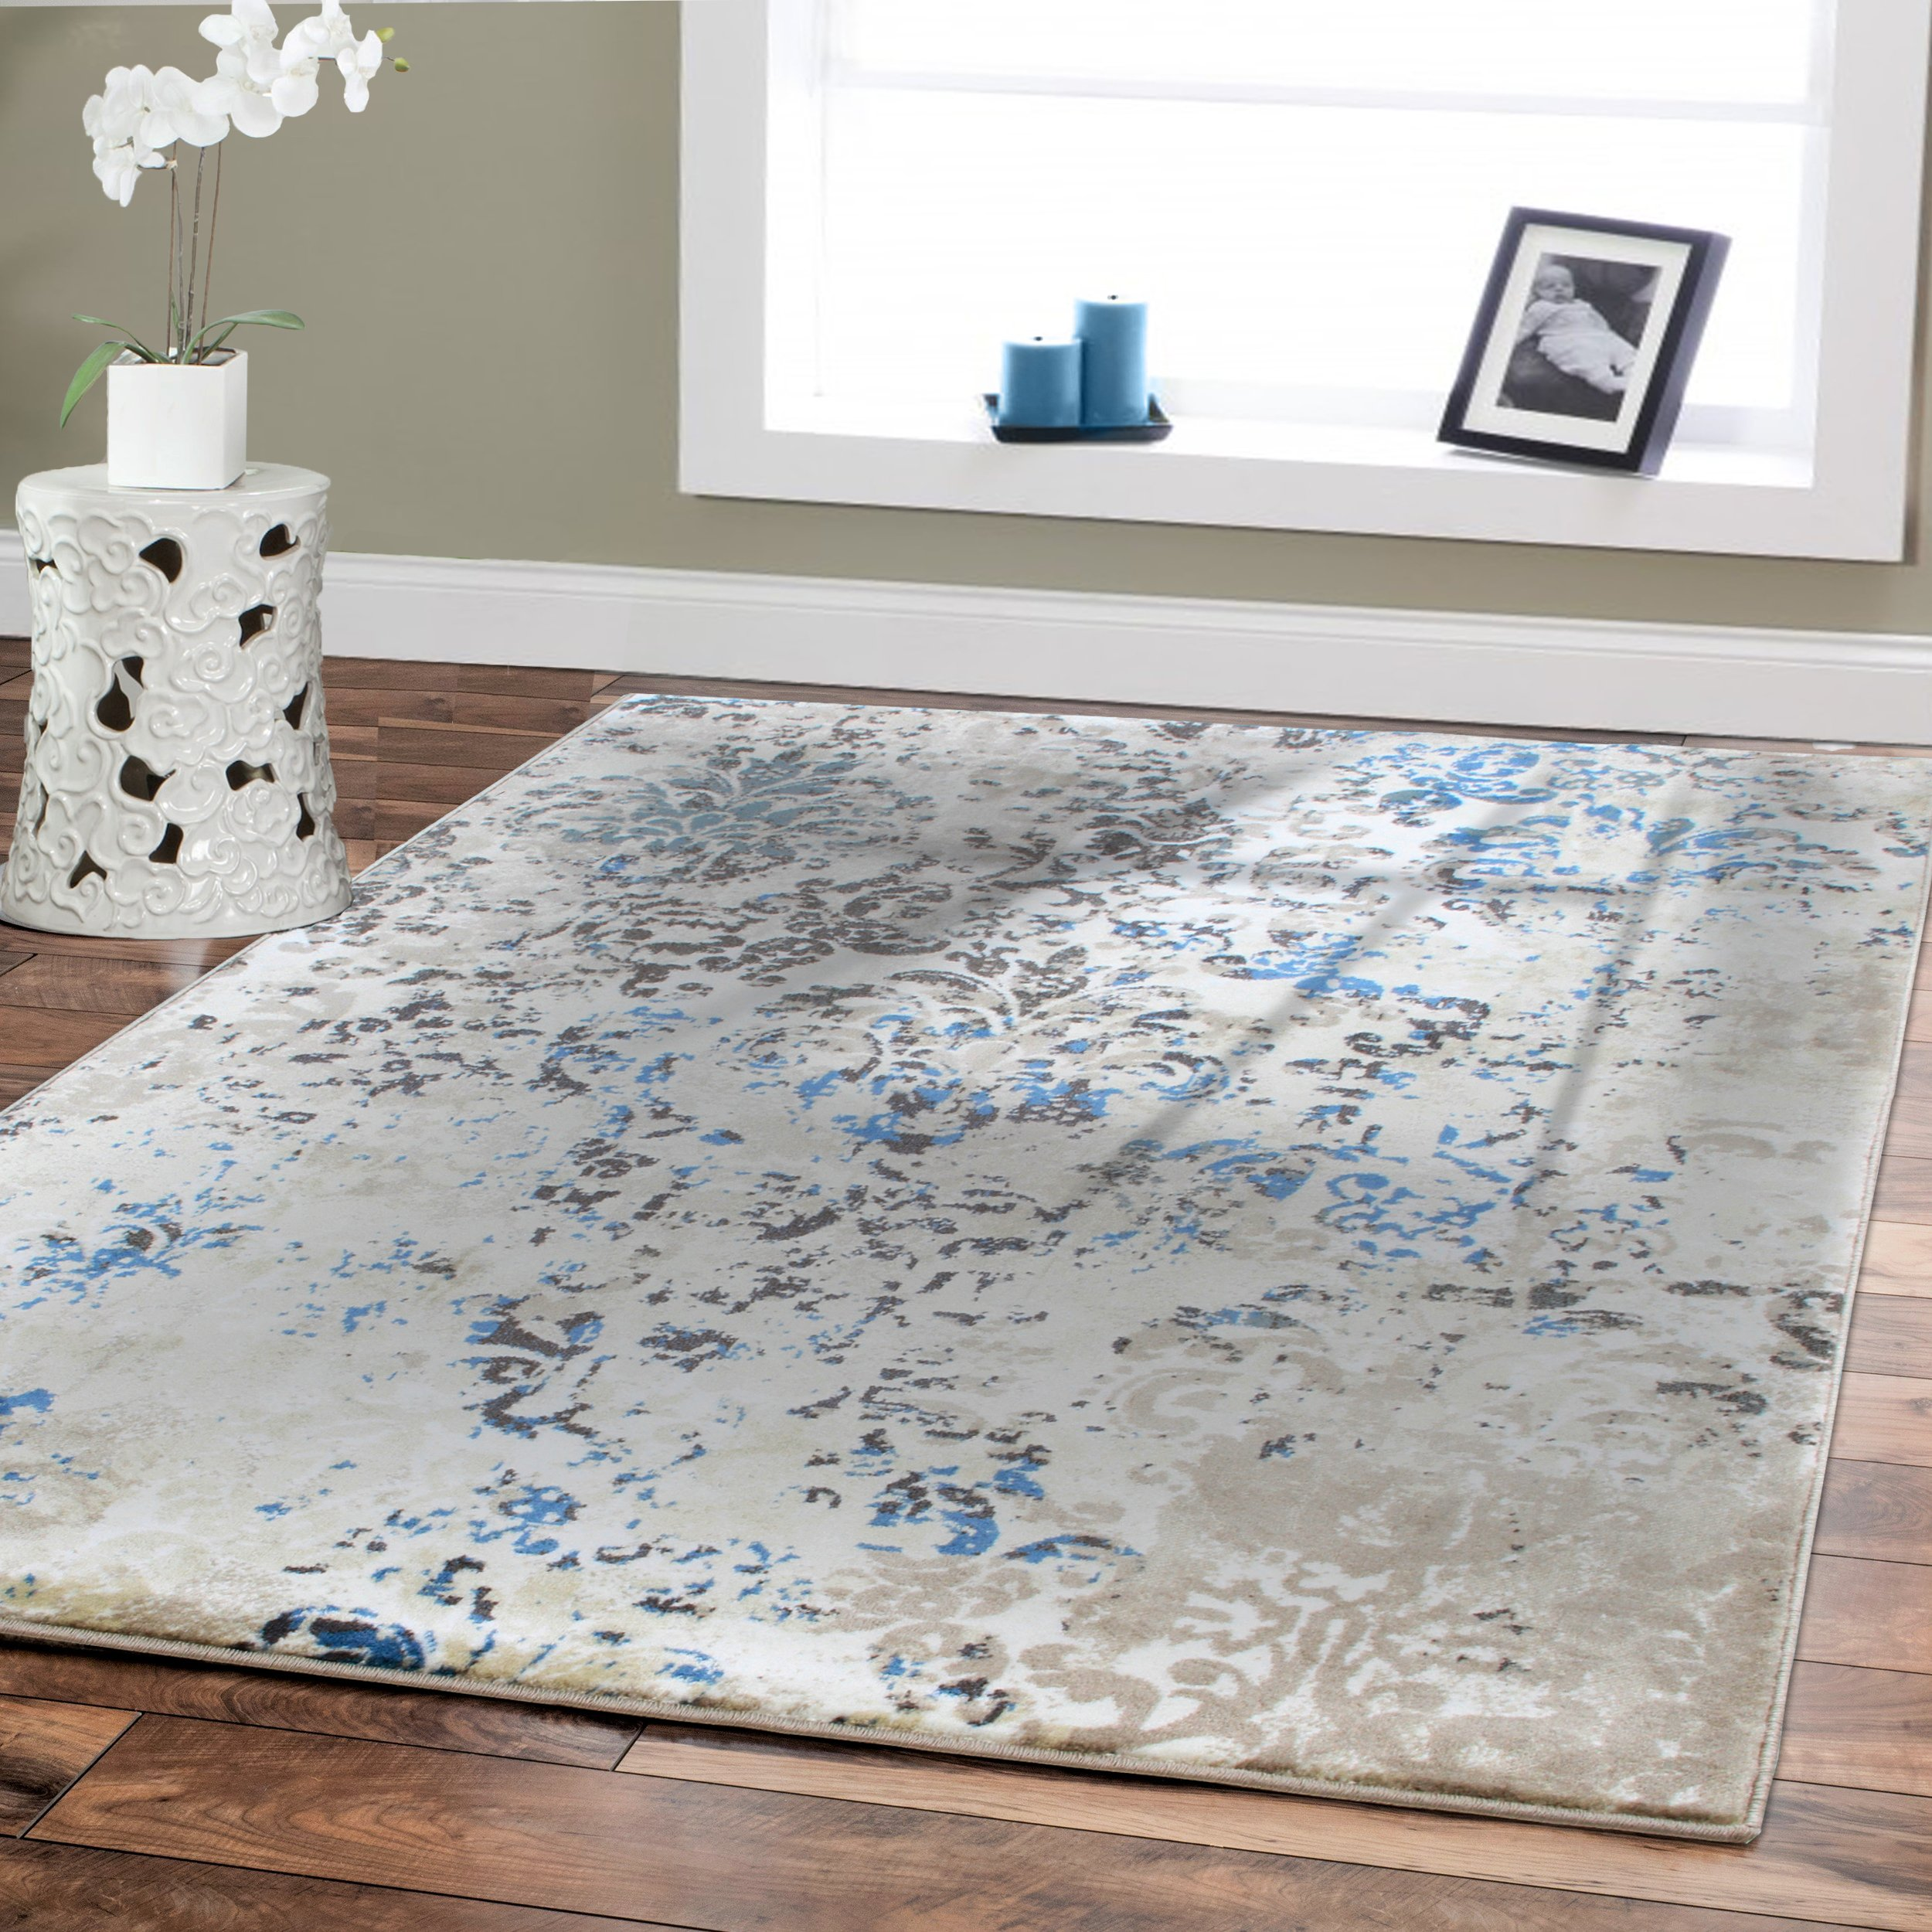 Extra large area rug - Contemporary rugs for living room ...